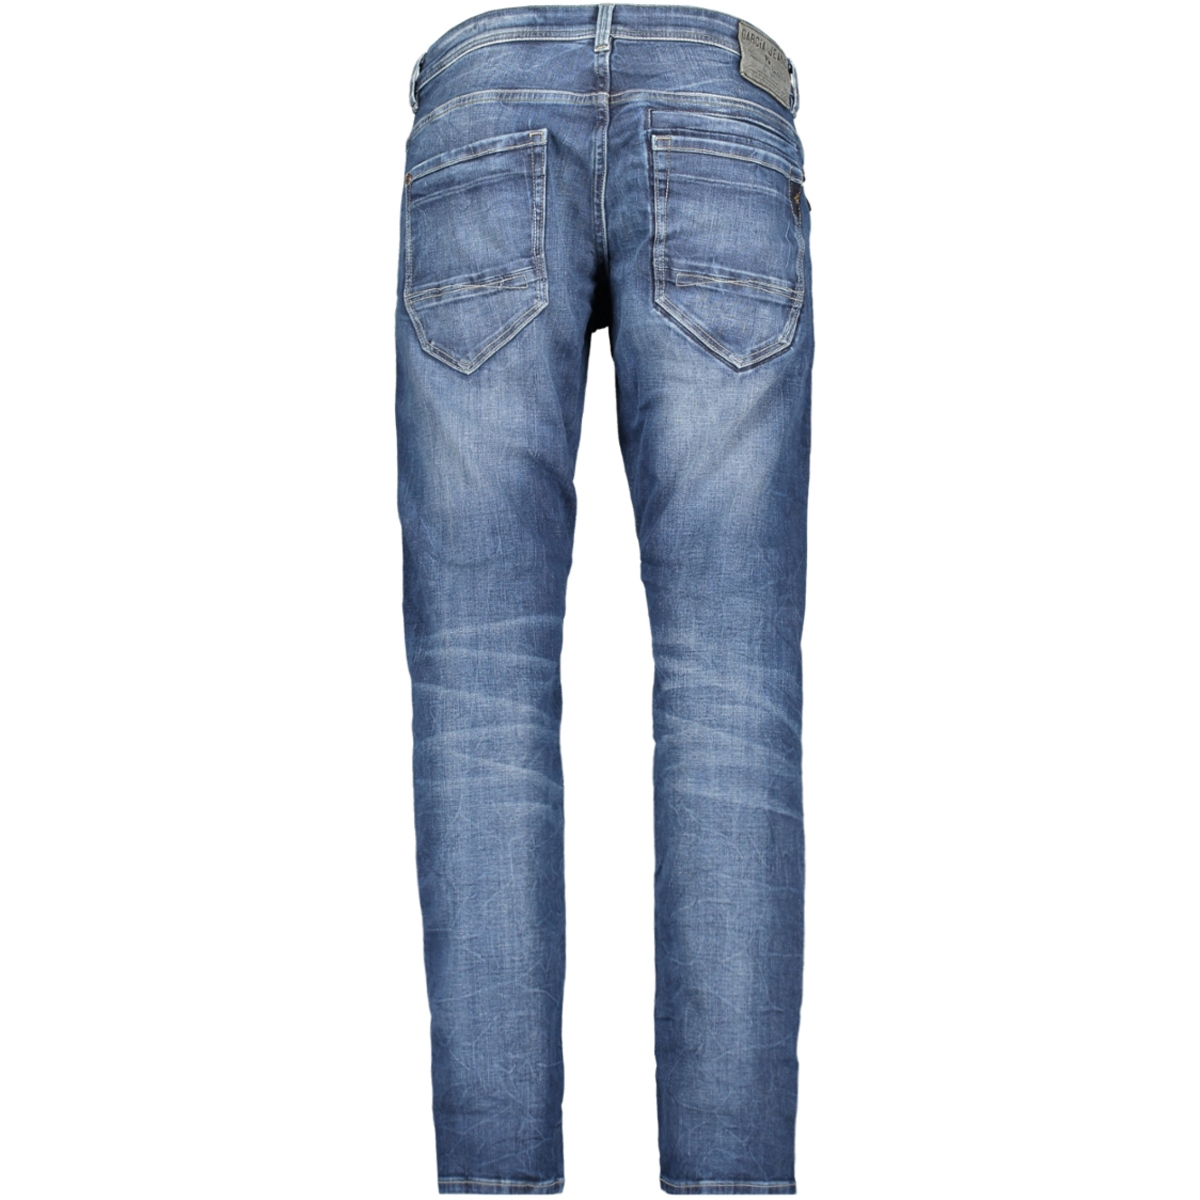 612 russo edition garcia jeans 6769